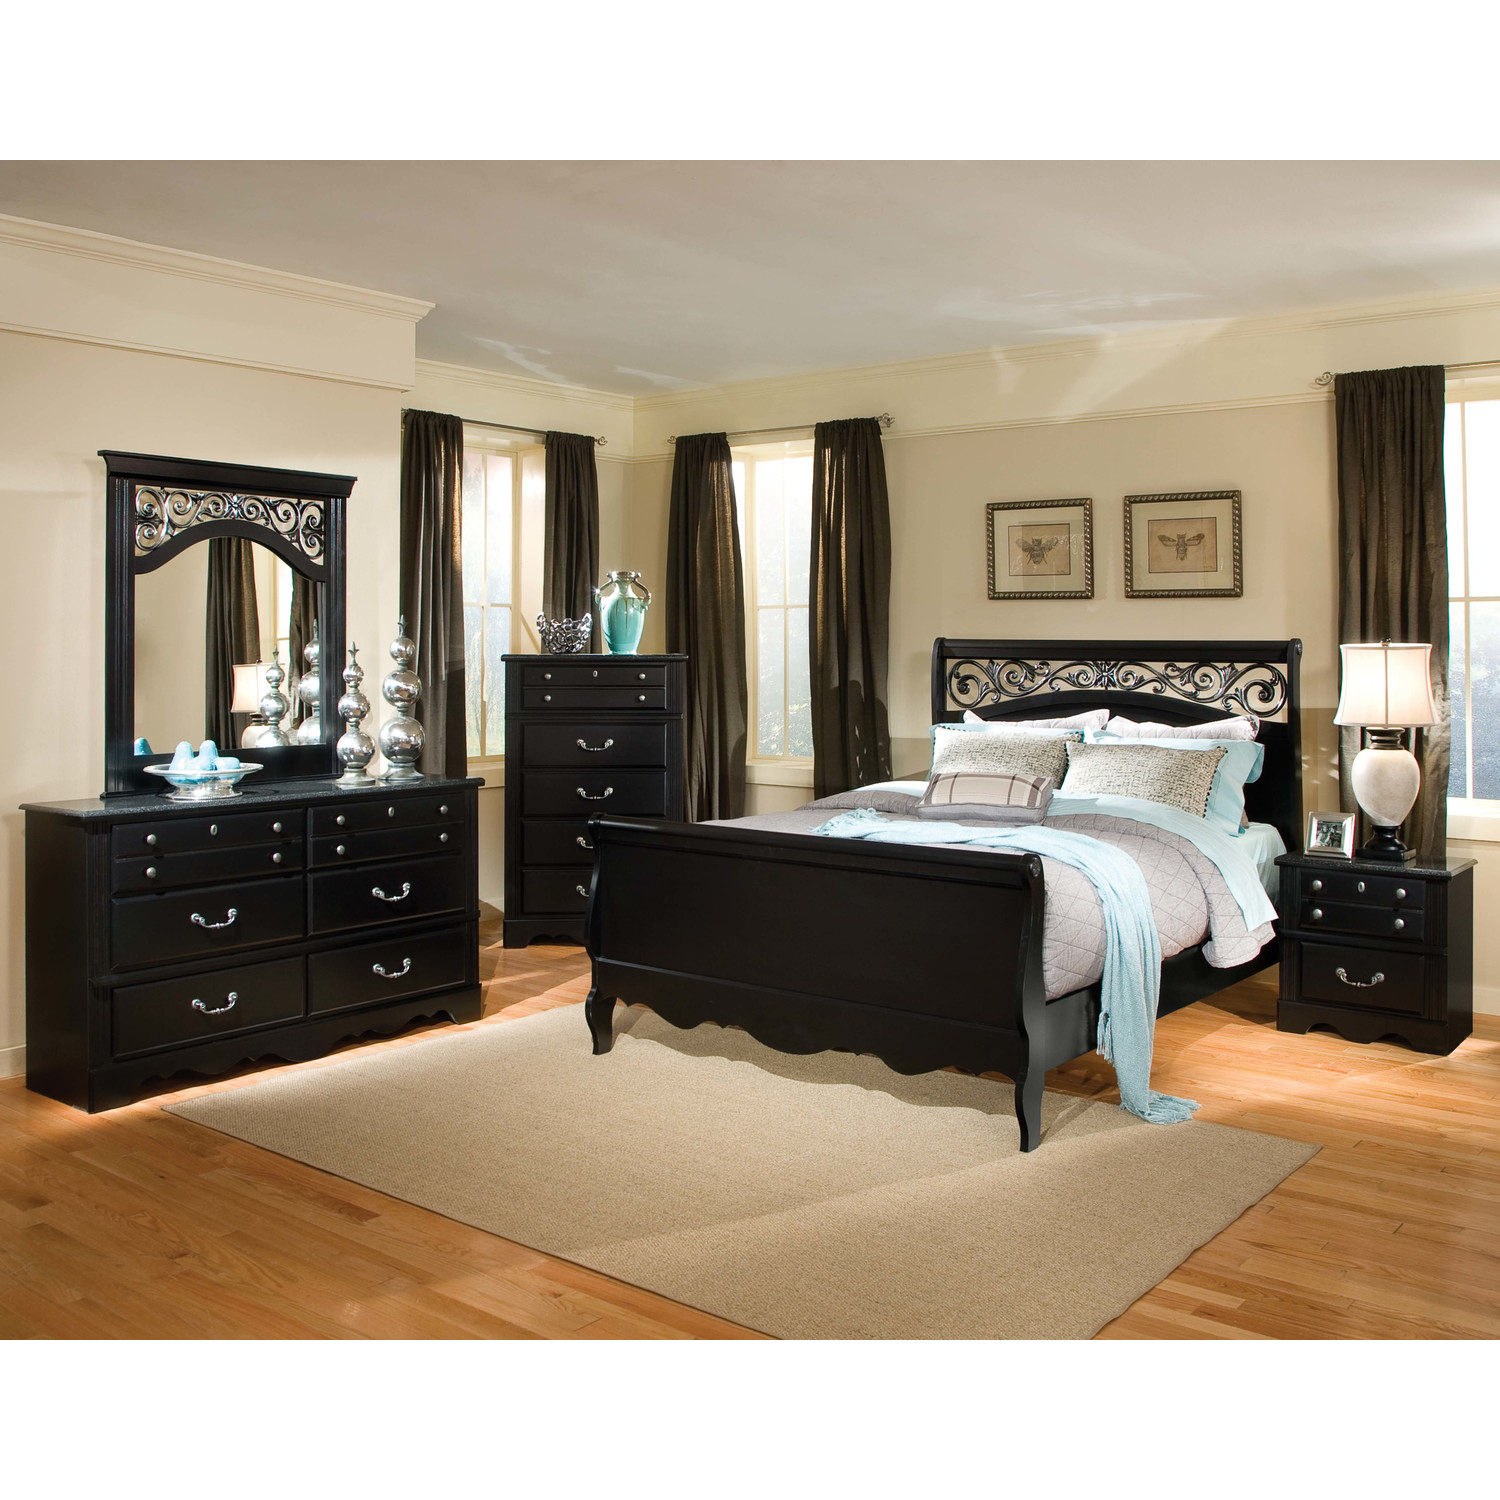 Black bedroom furniture belfast